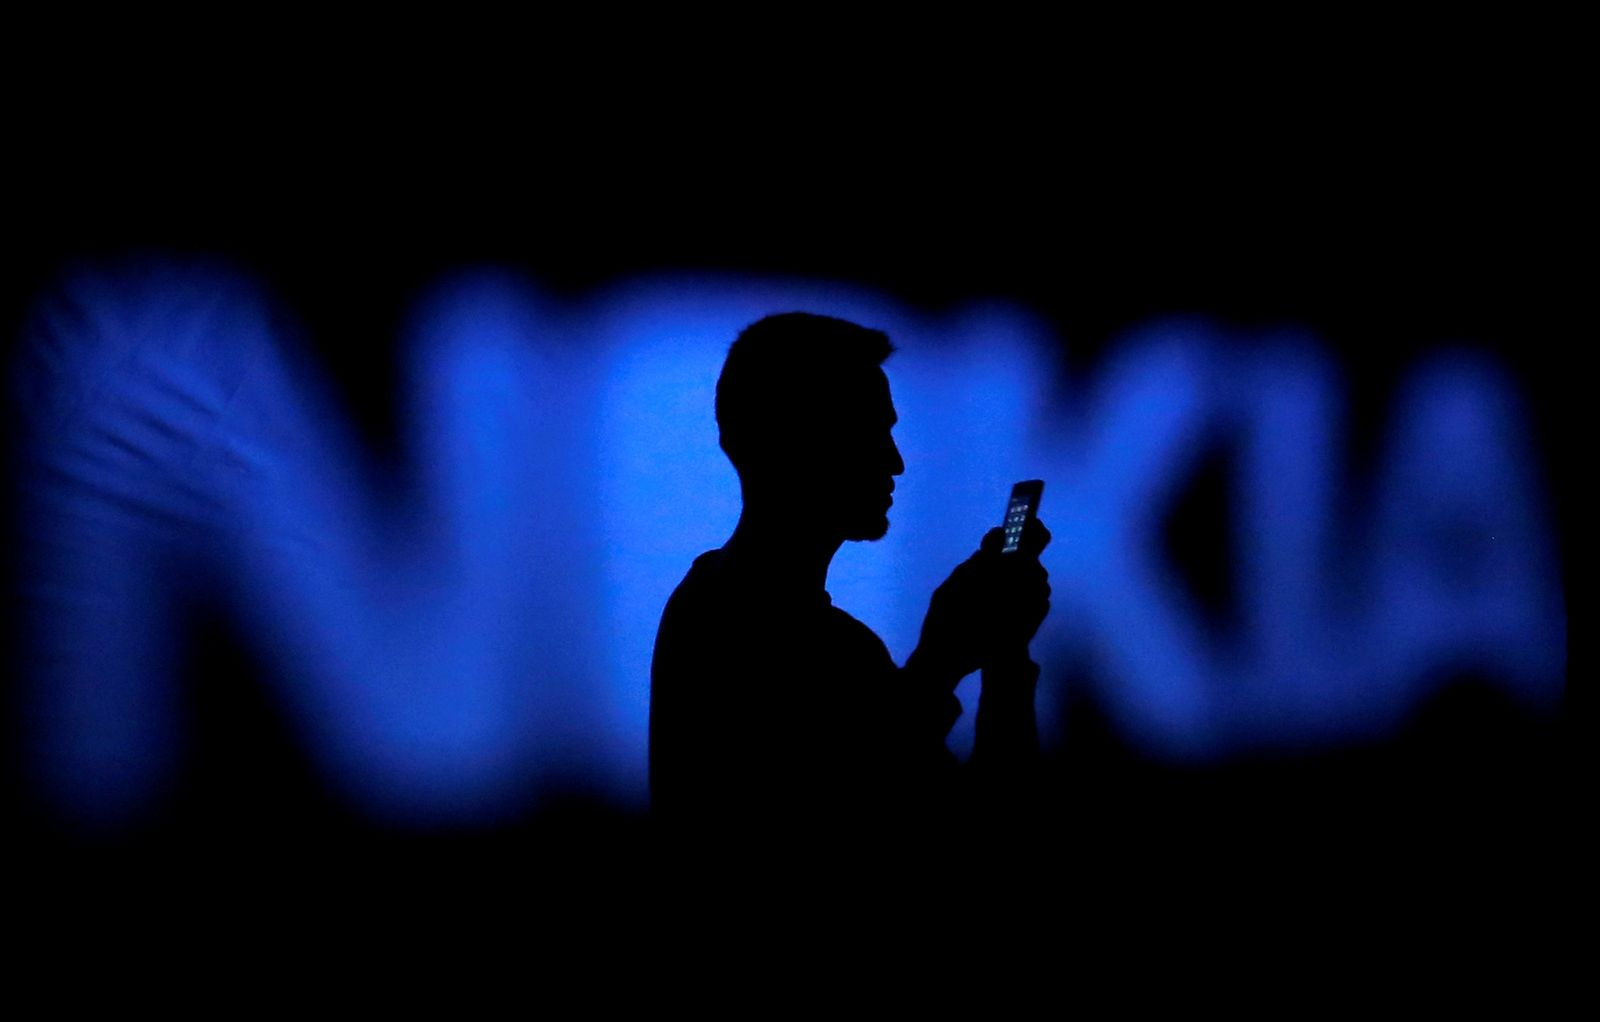 FILE PHOTO: A photo illustration of a man silhouetted against a Nokia logo